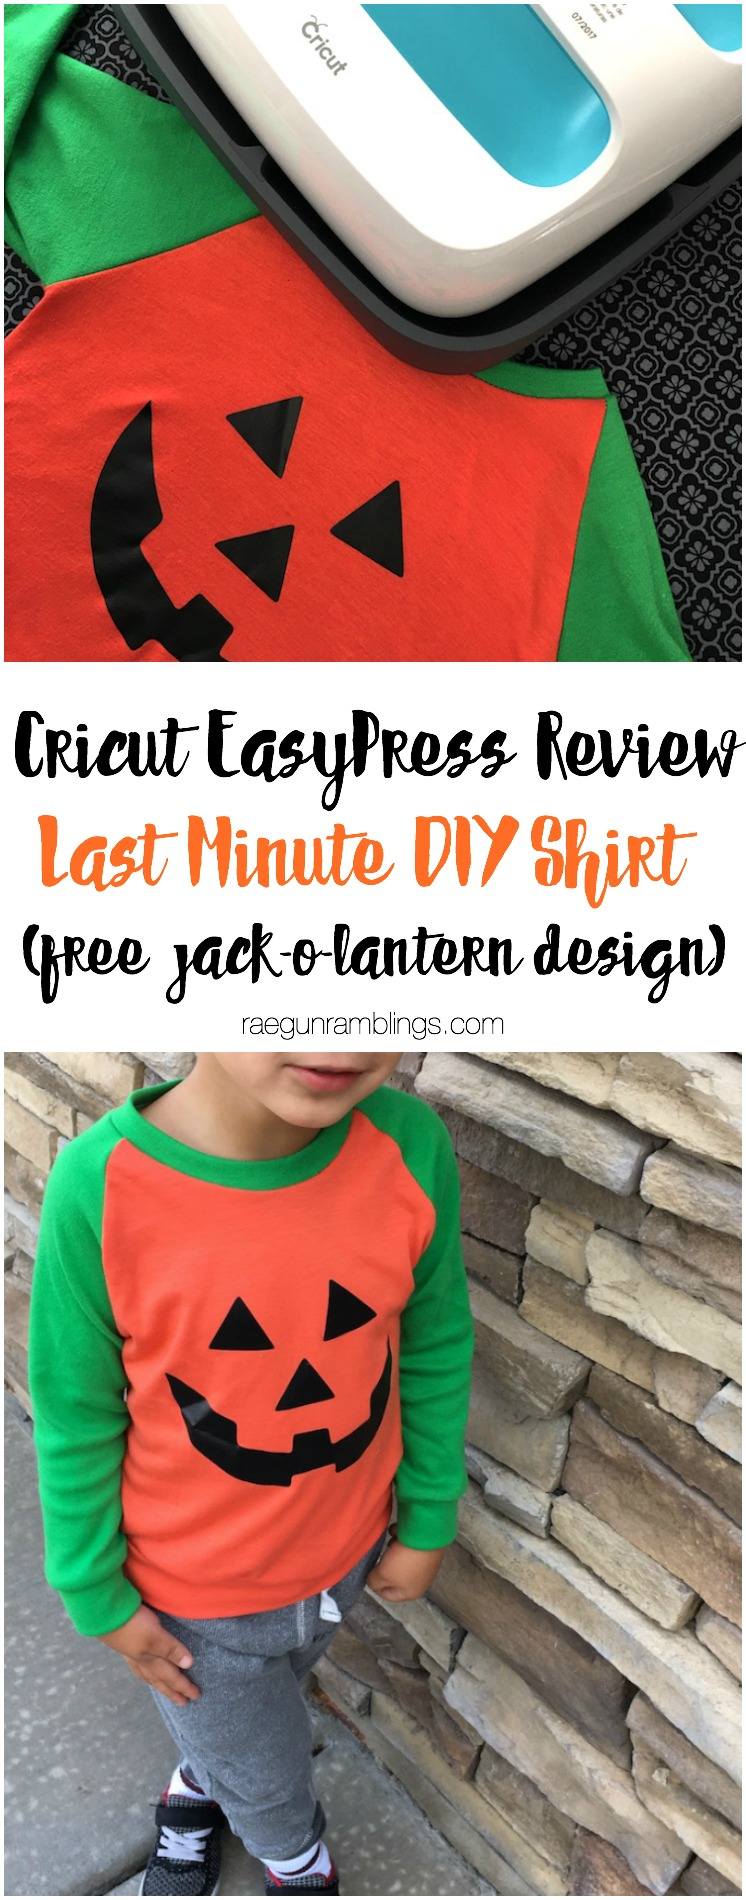 great free jackolantern design plus easy last minute Halloween costume and cricut easypress heat press review